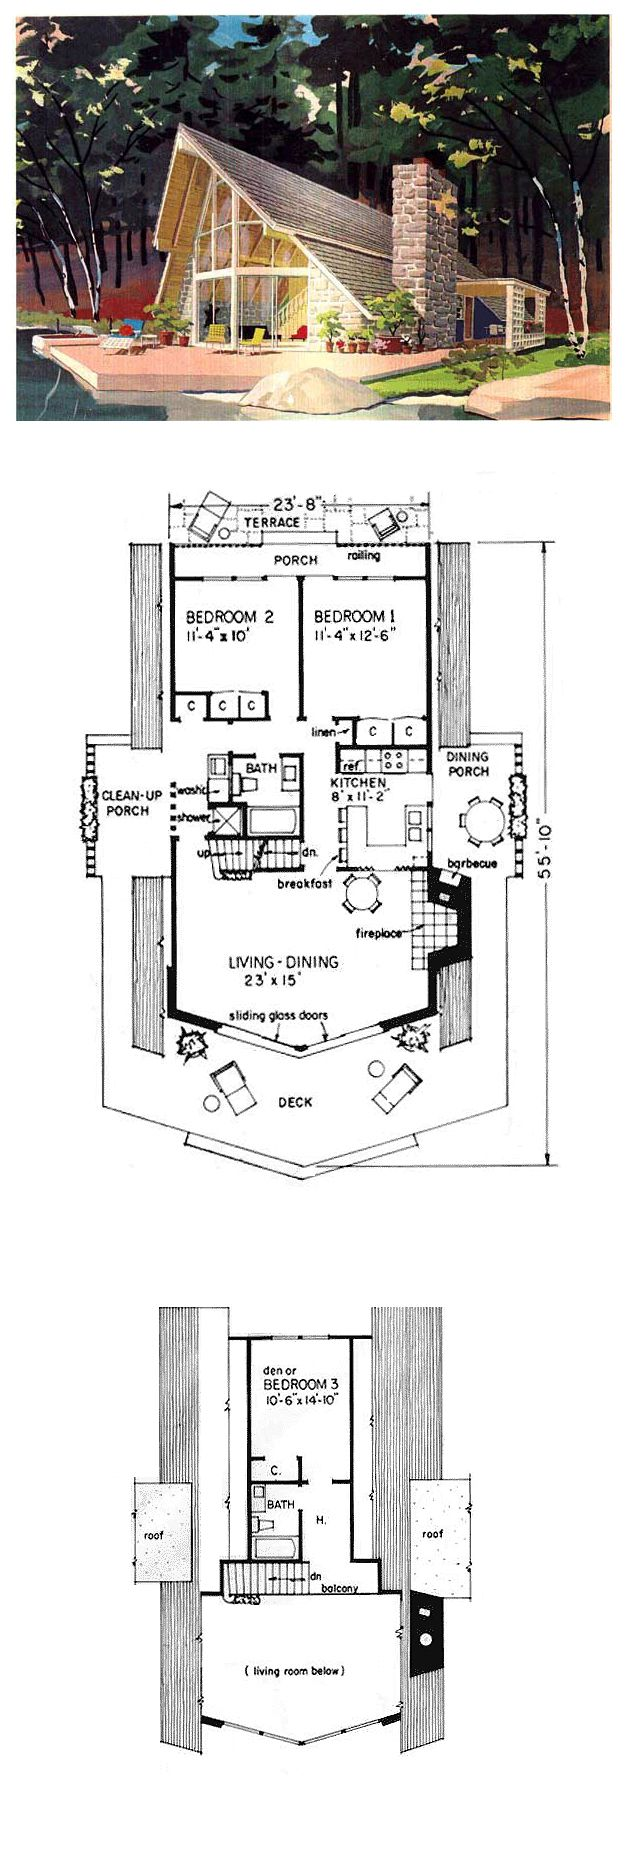 A Frame House Plan chp 5581 1172 best House